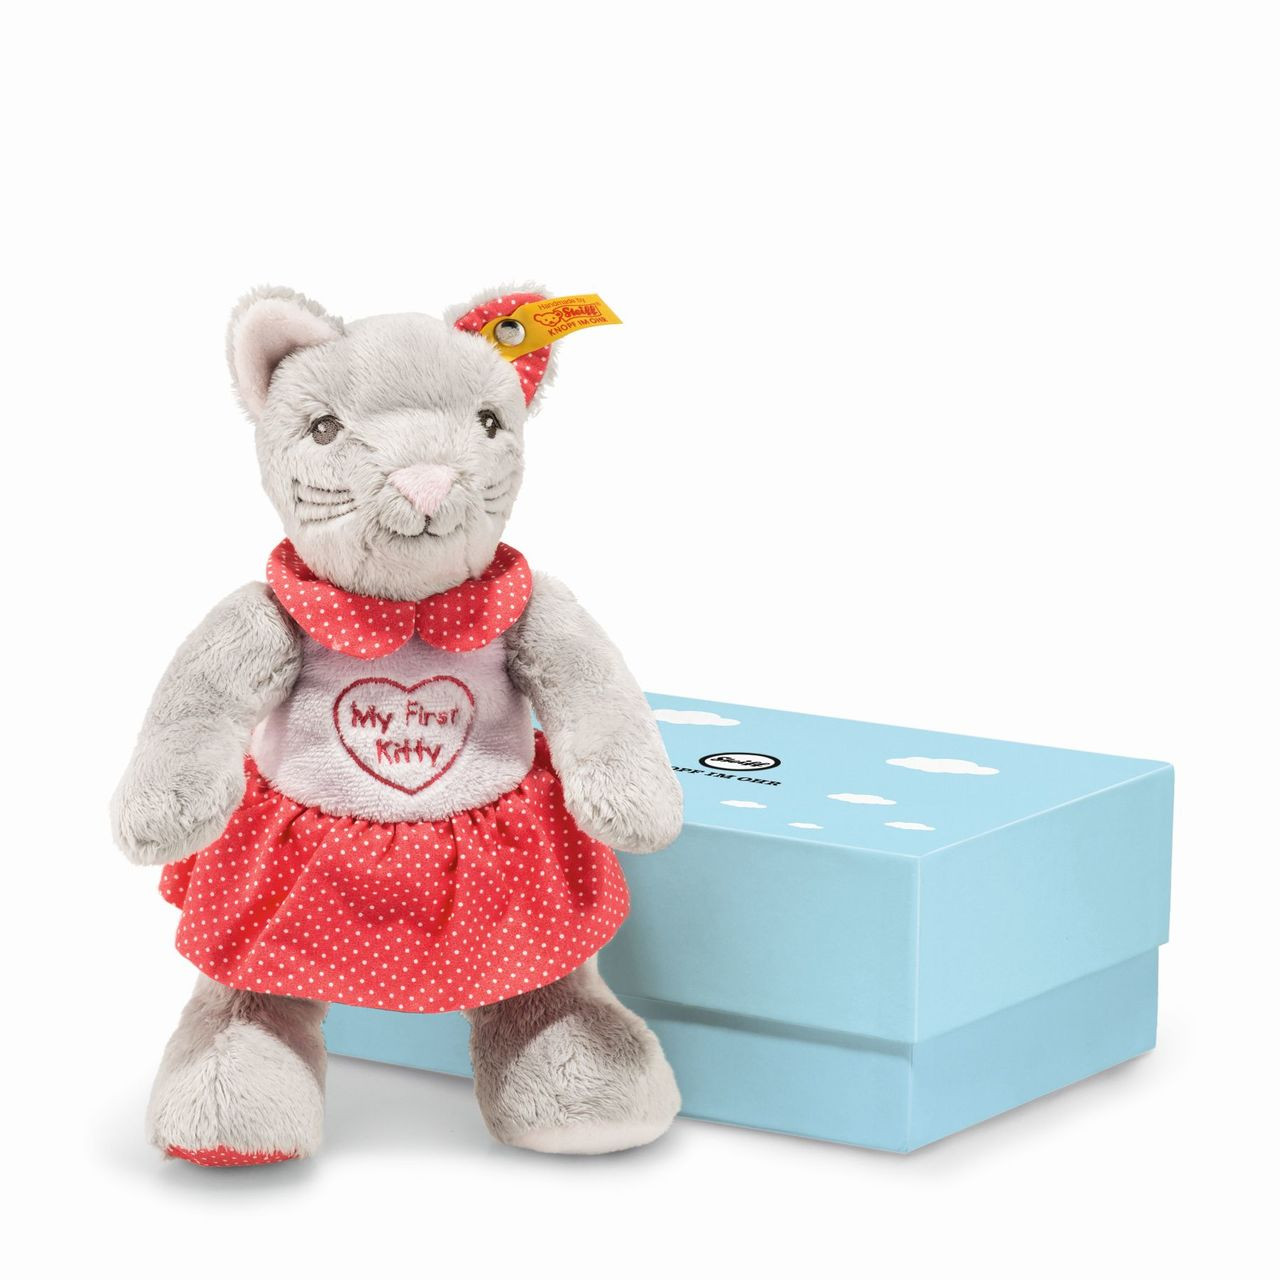 Steiff 'My First Steiff' washable pink baby teddy bear in gift box Plush Baby Toys EAN 664717 Toys for Baby